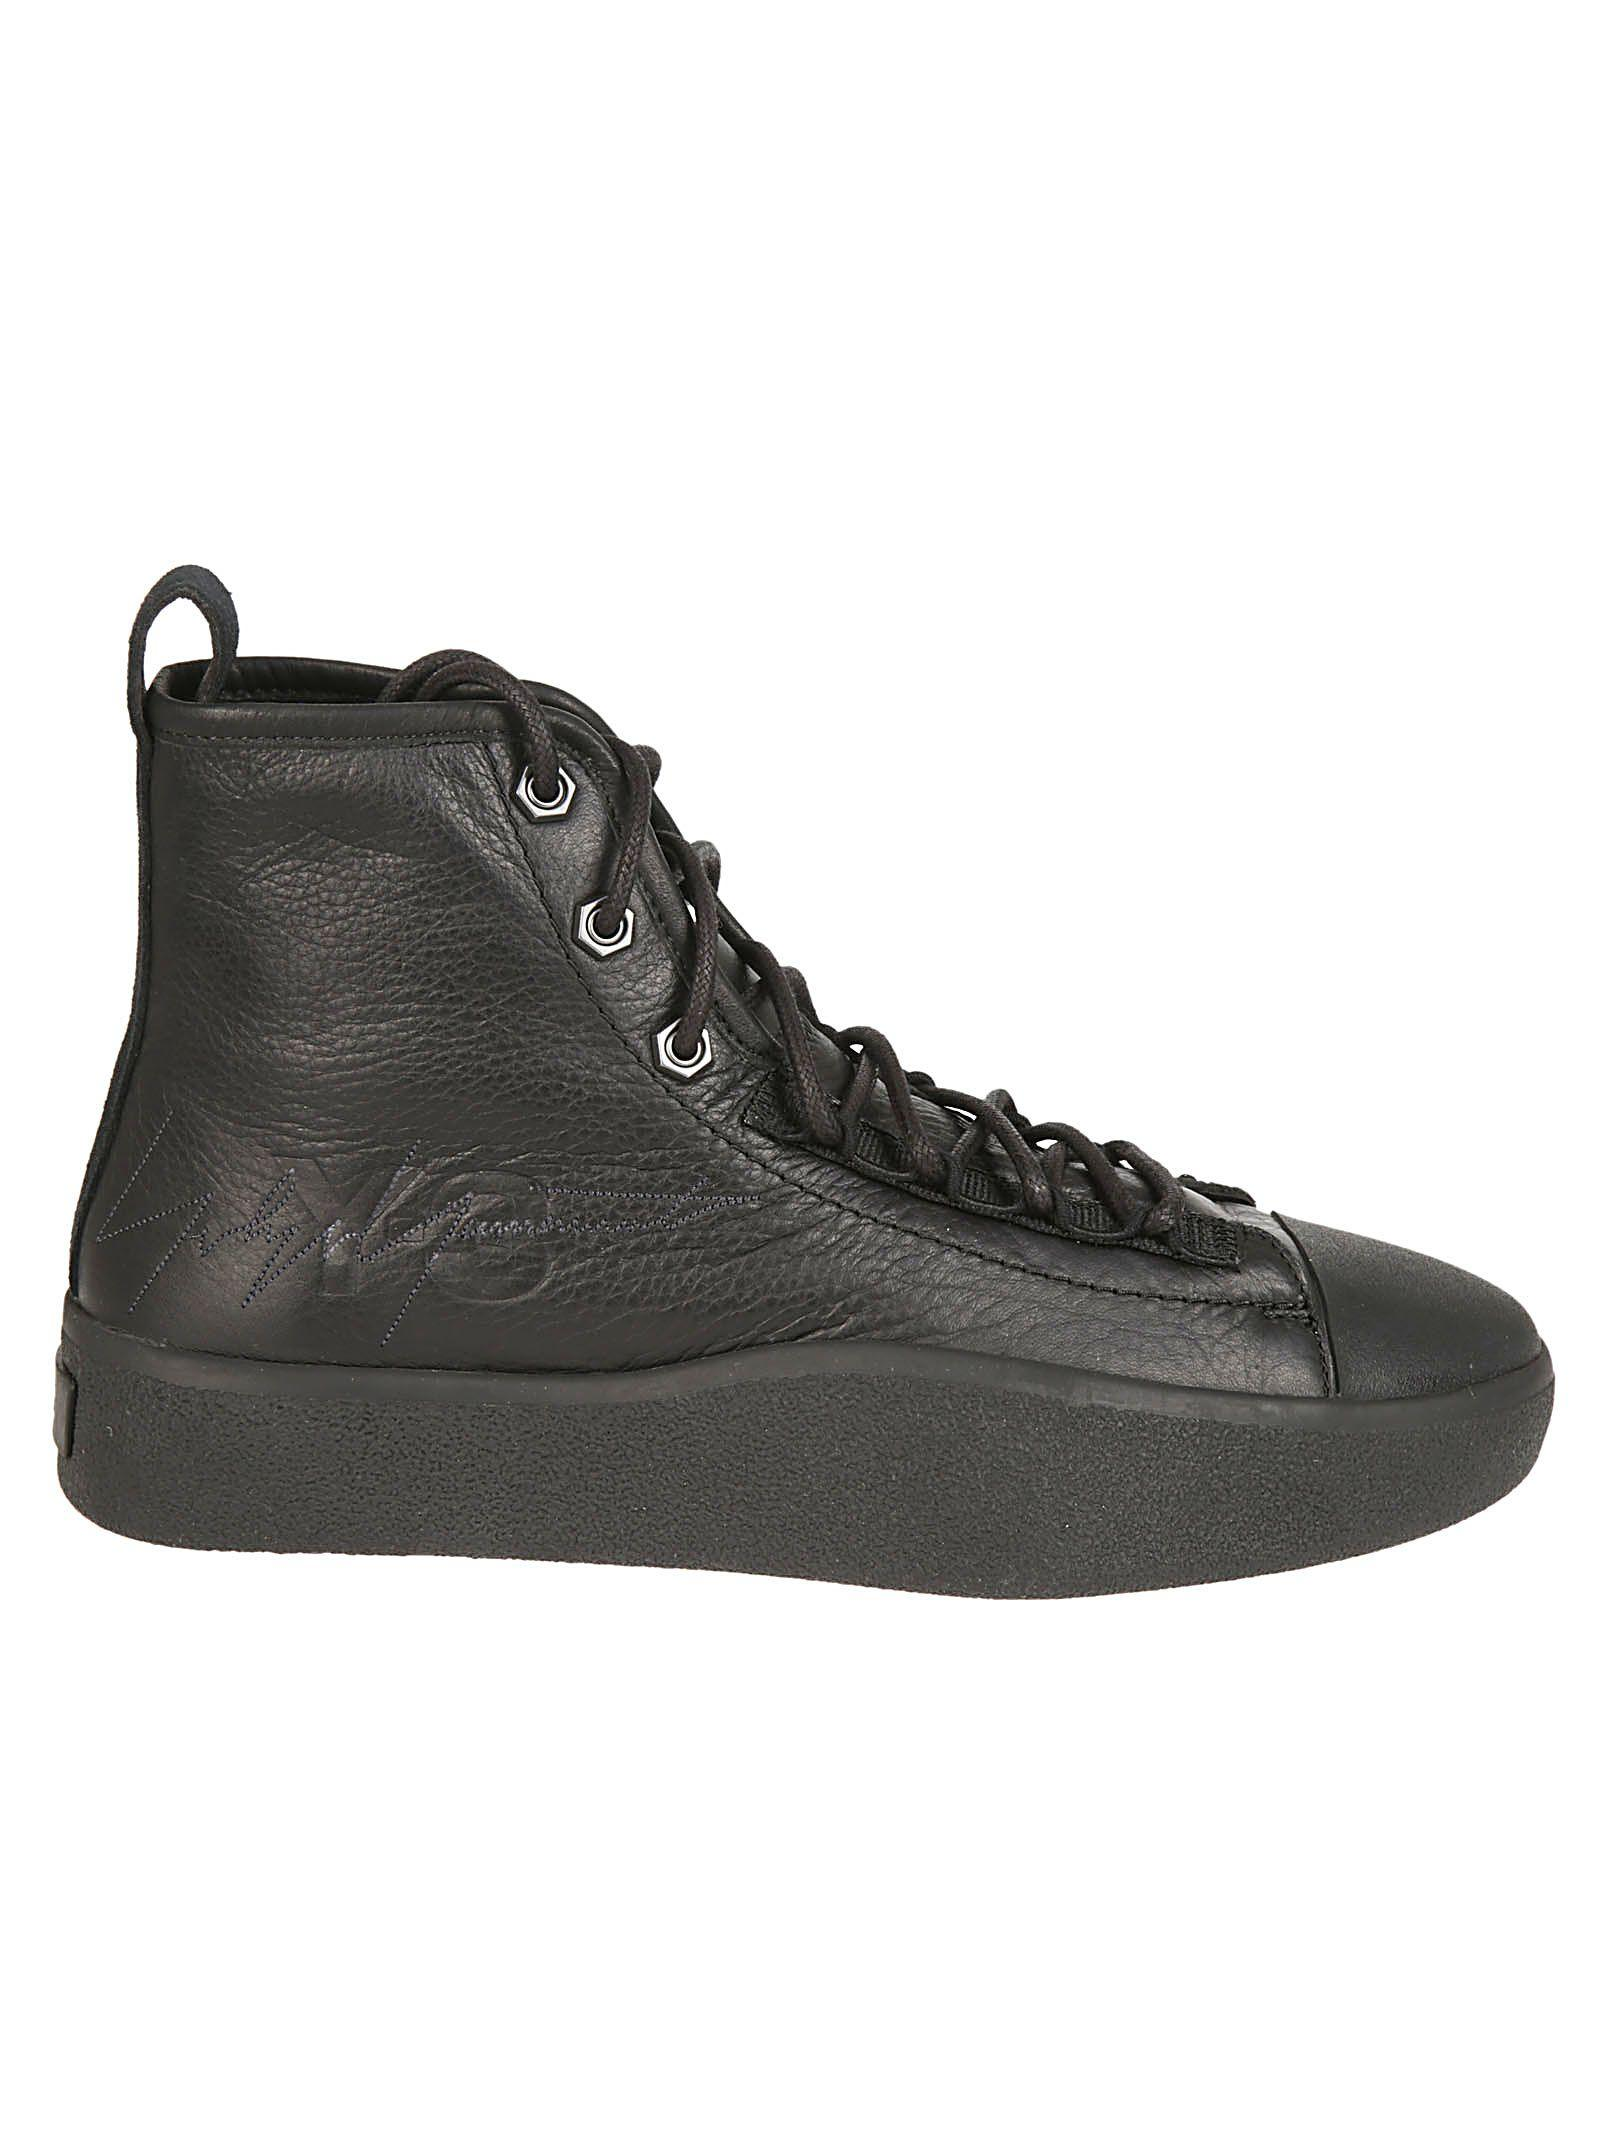 2ac8dbecbd92b Y-3 Men s Bashyo Leather High-Top Sneakers In Black